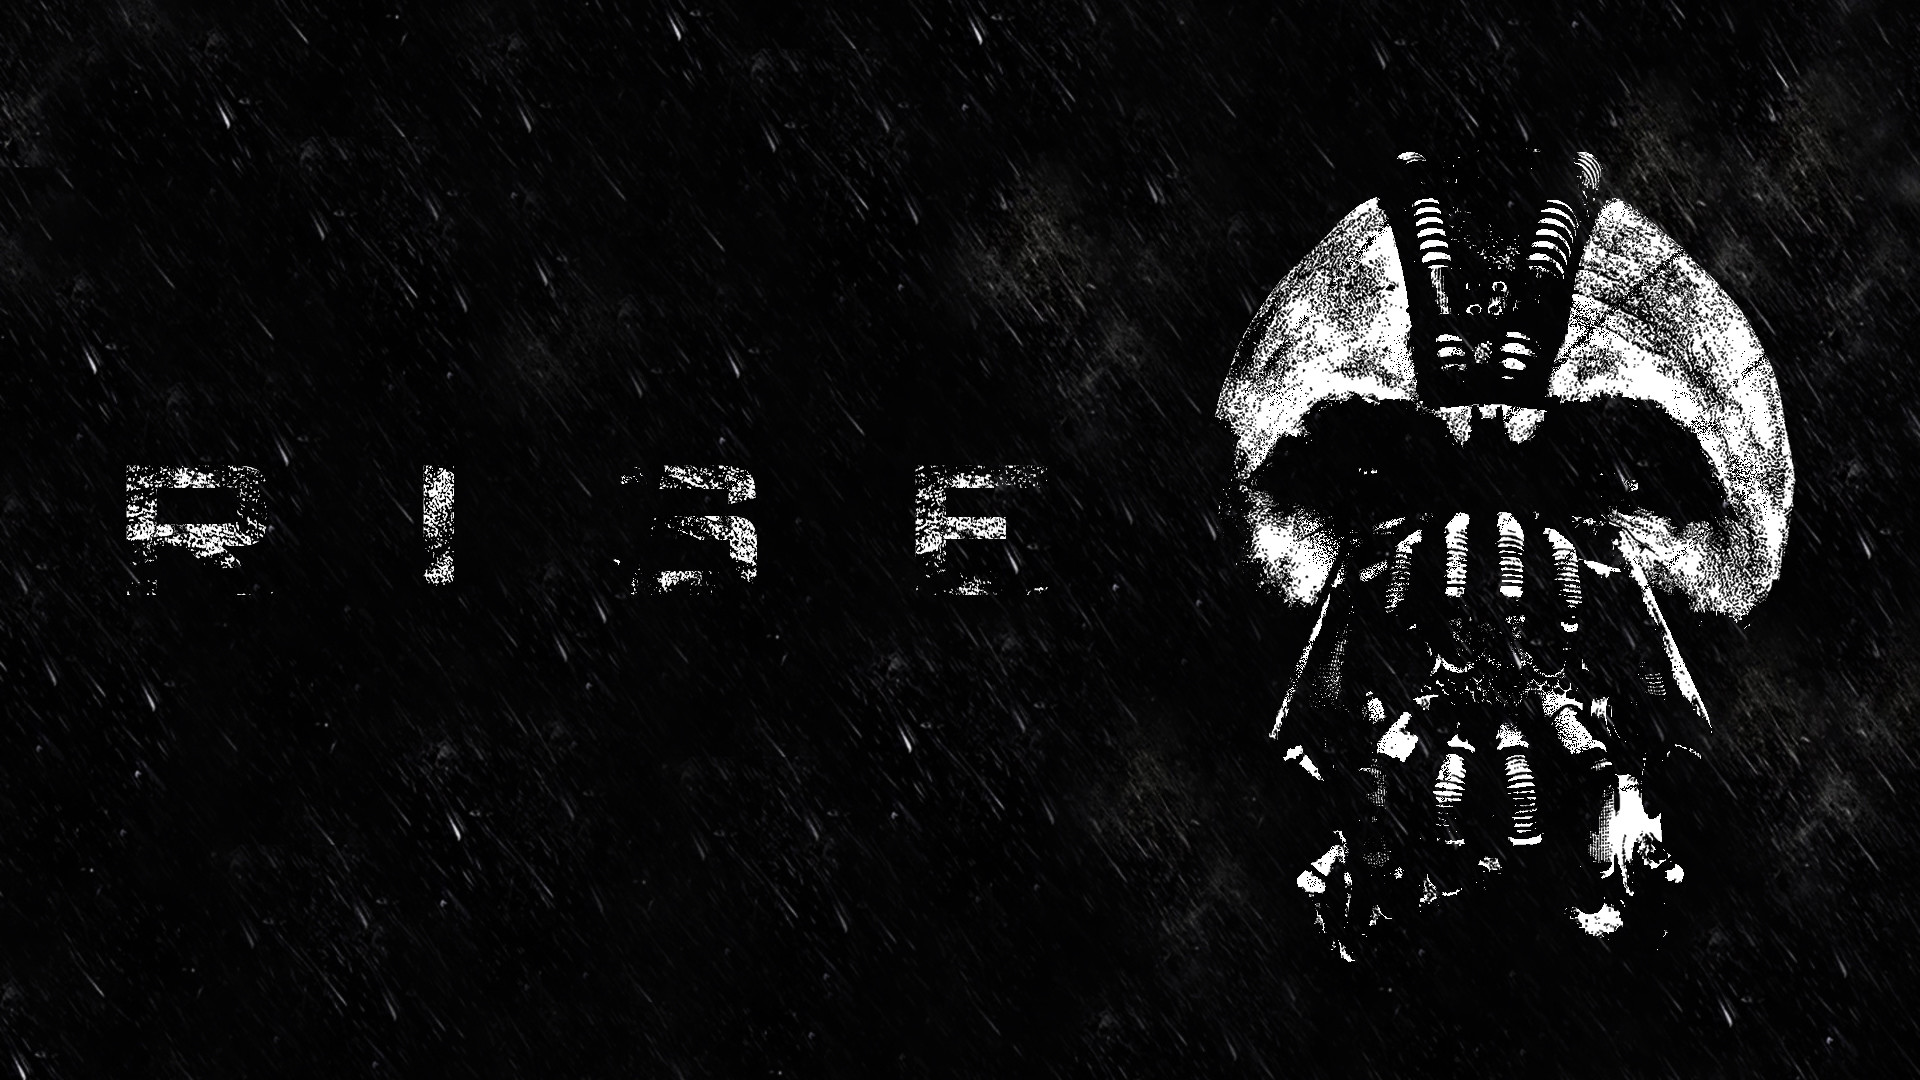 1920x1080 ... The Dark Knight Rises Bane Wallpaper by PKwithVengeance